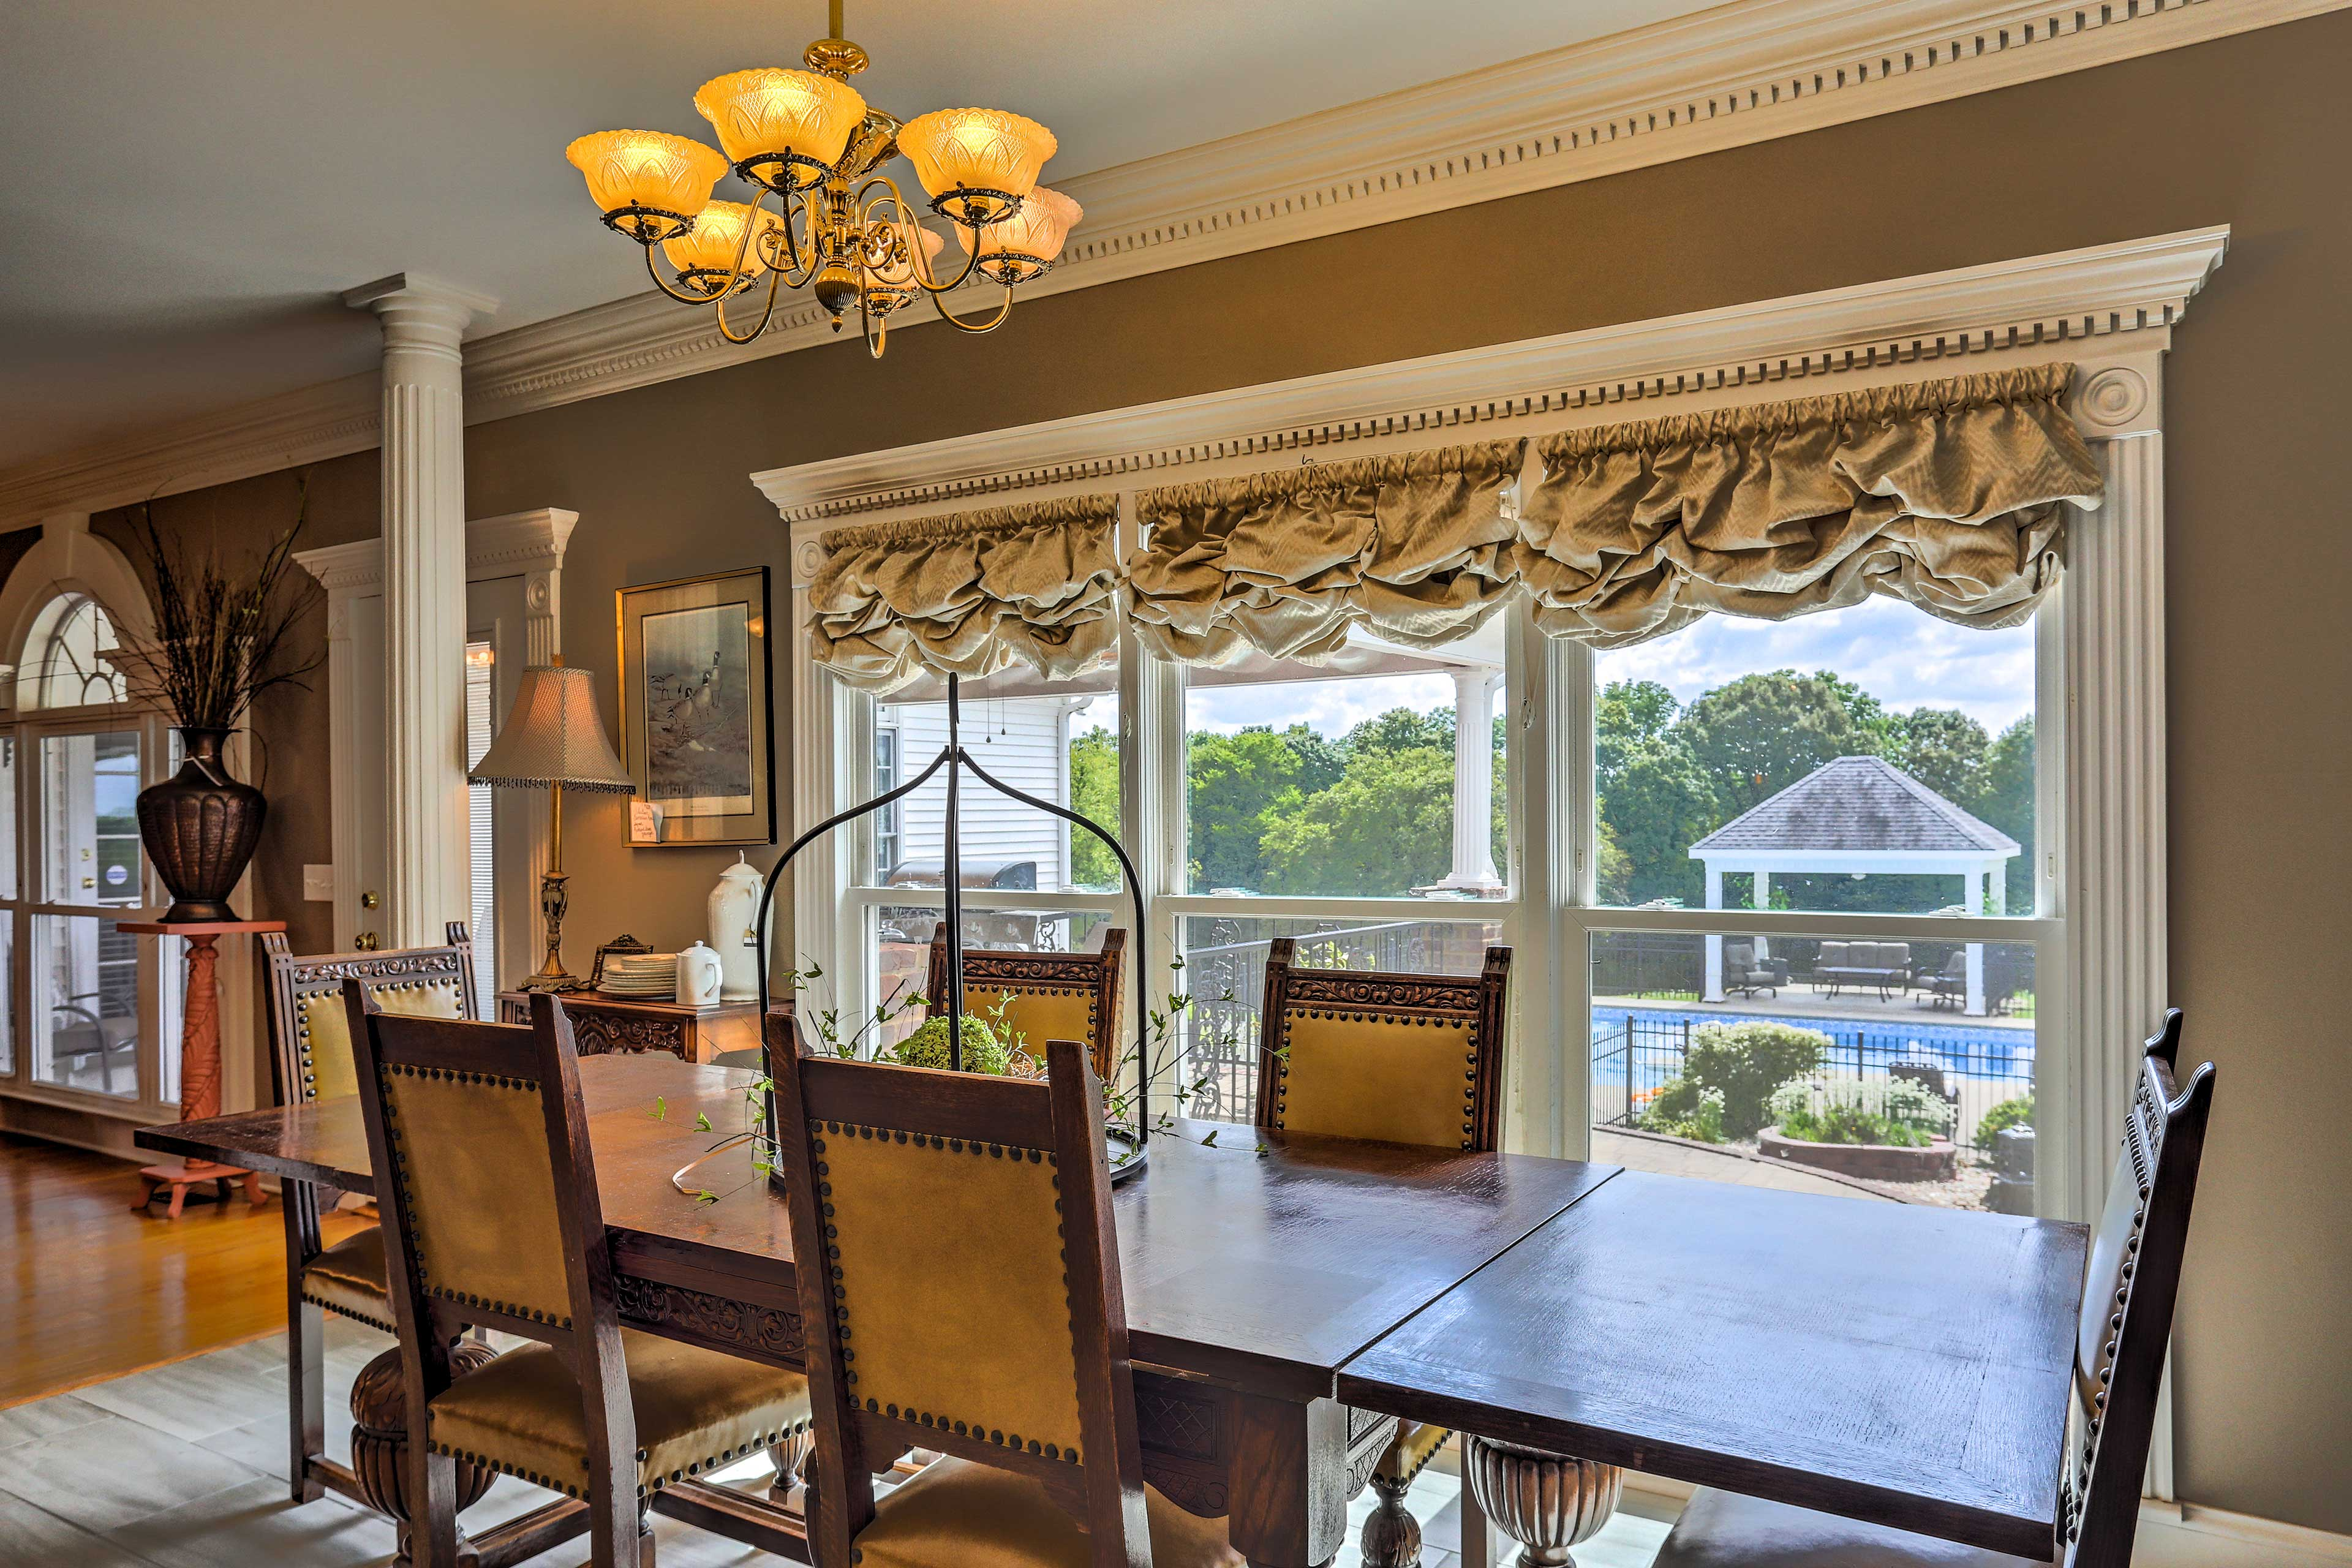 Pull up a chair to enjoy dinner with a view of the pool.